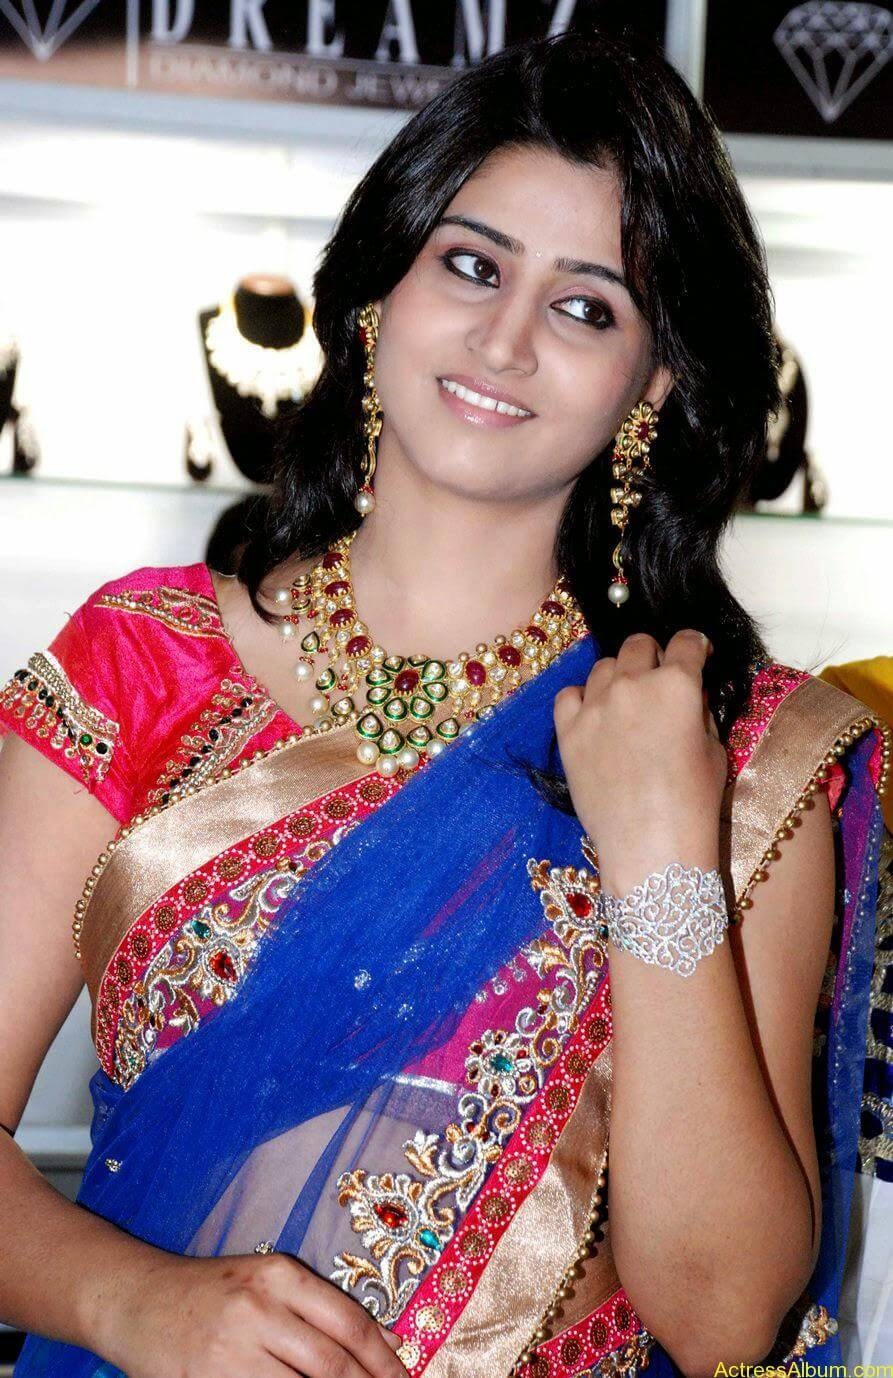 Shamli in saree at jewelry shop opening 6